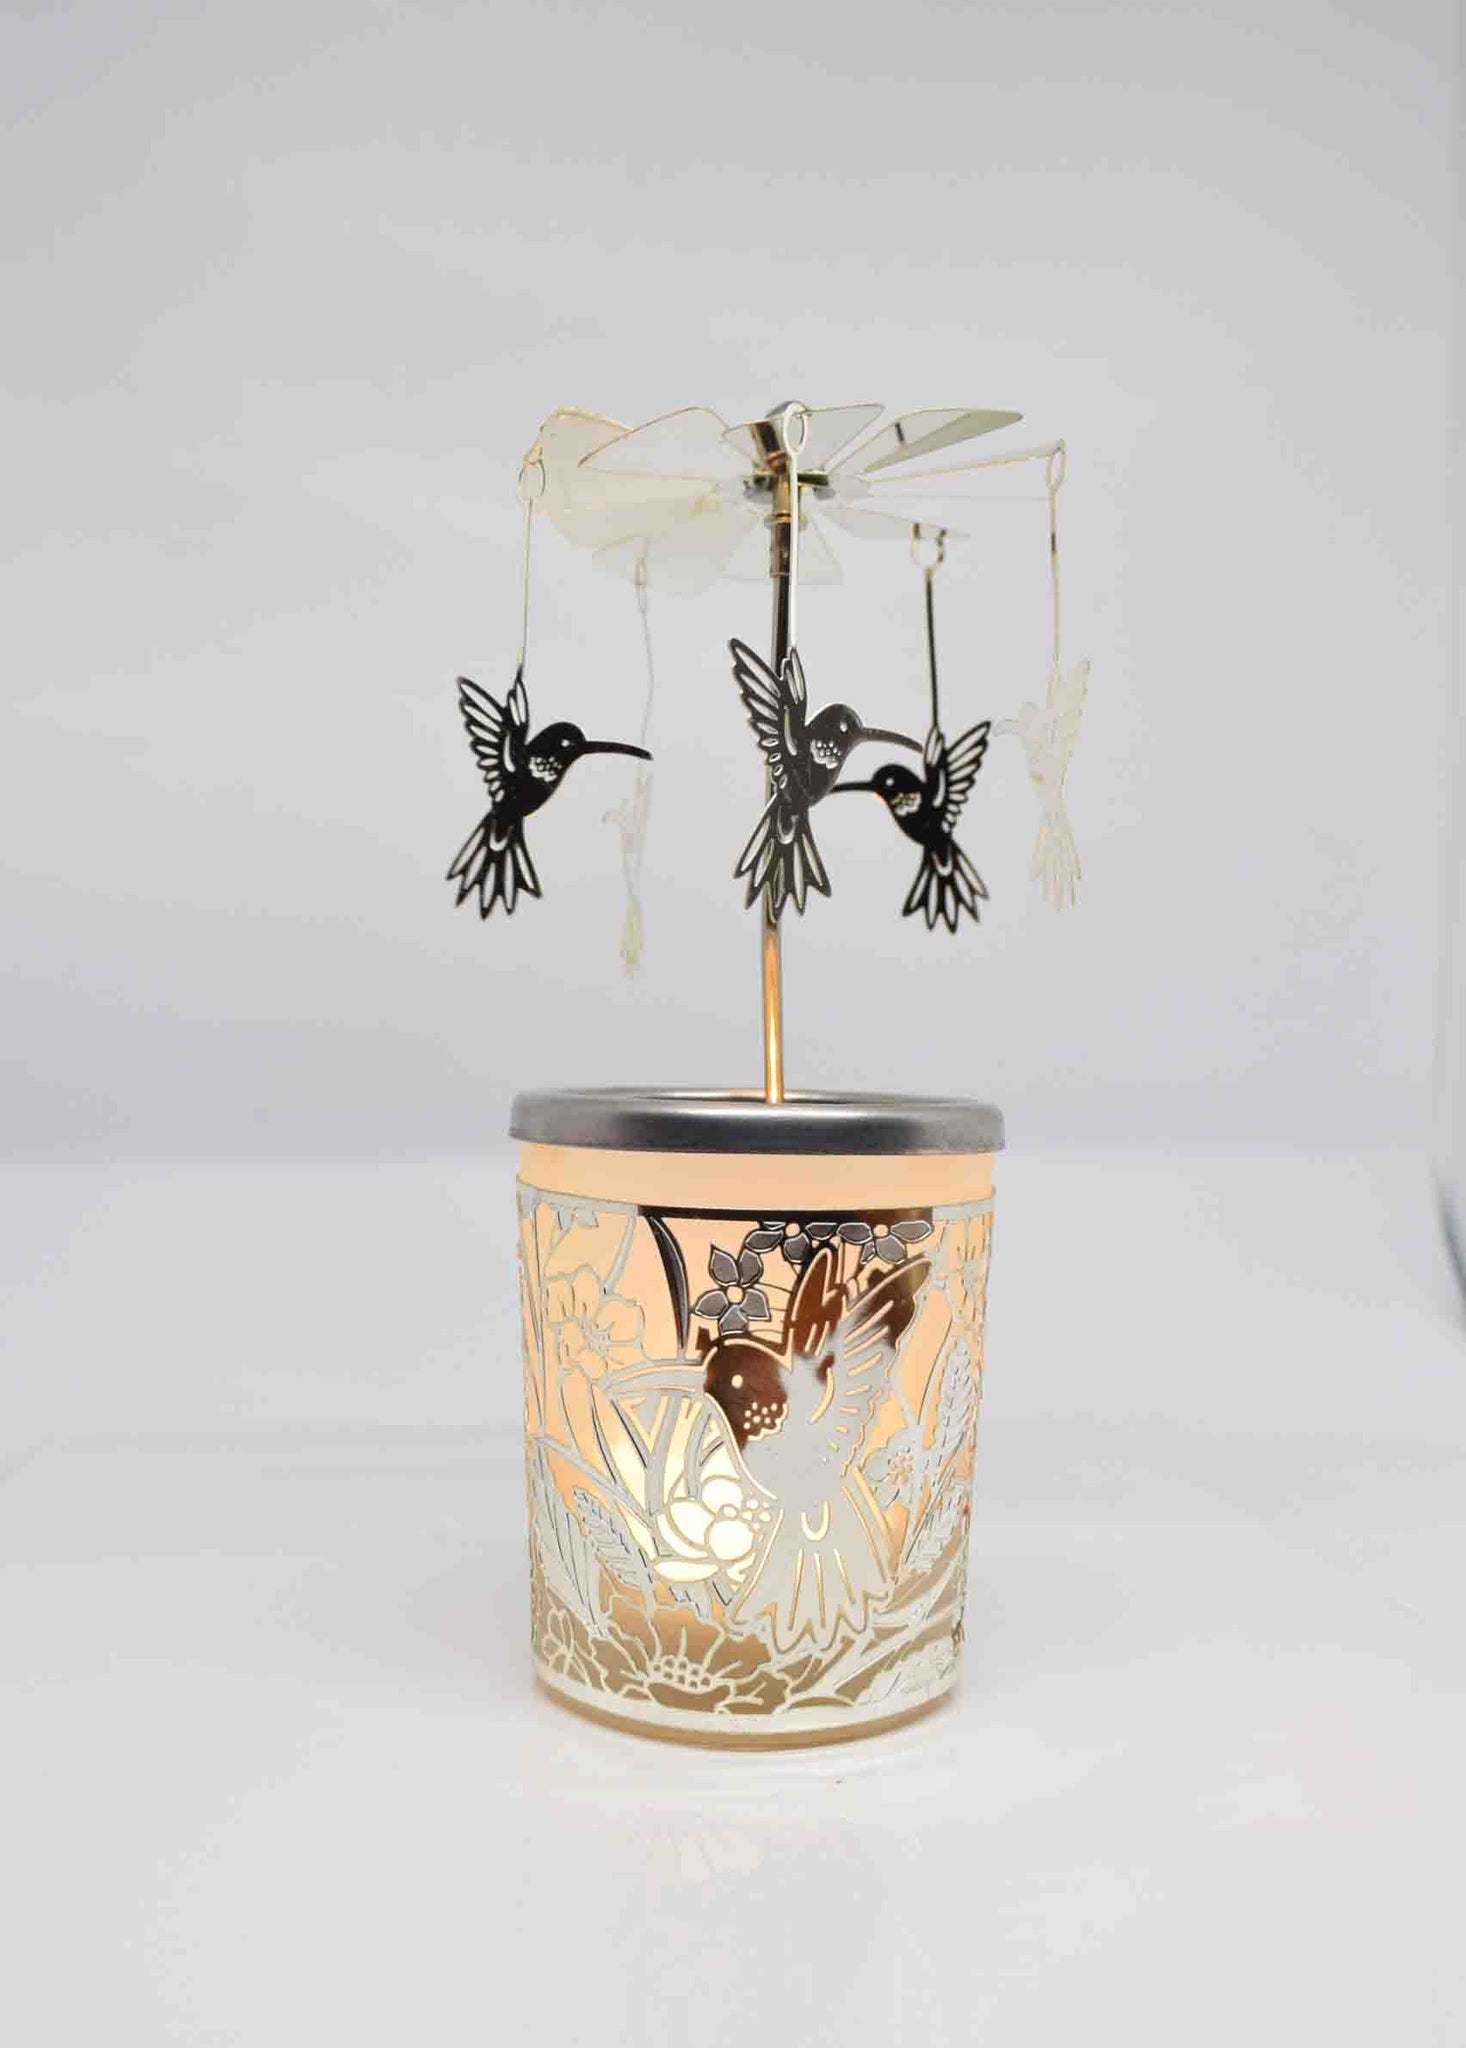 Flowerbird Tea Light Carousel - Pixi Daisy